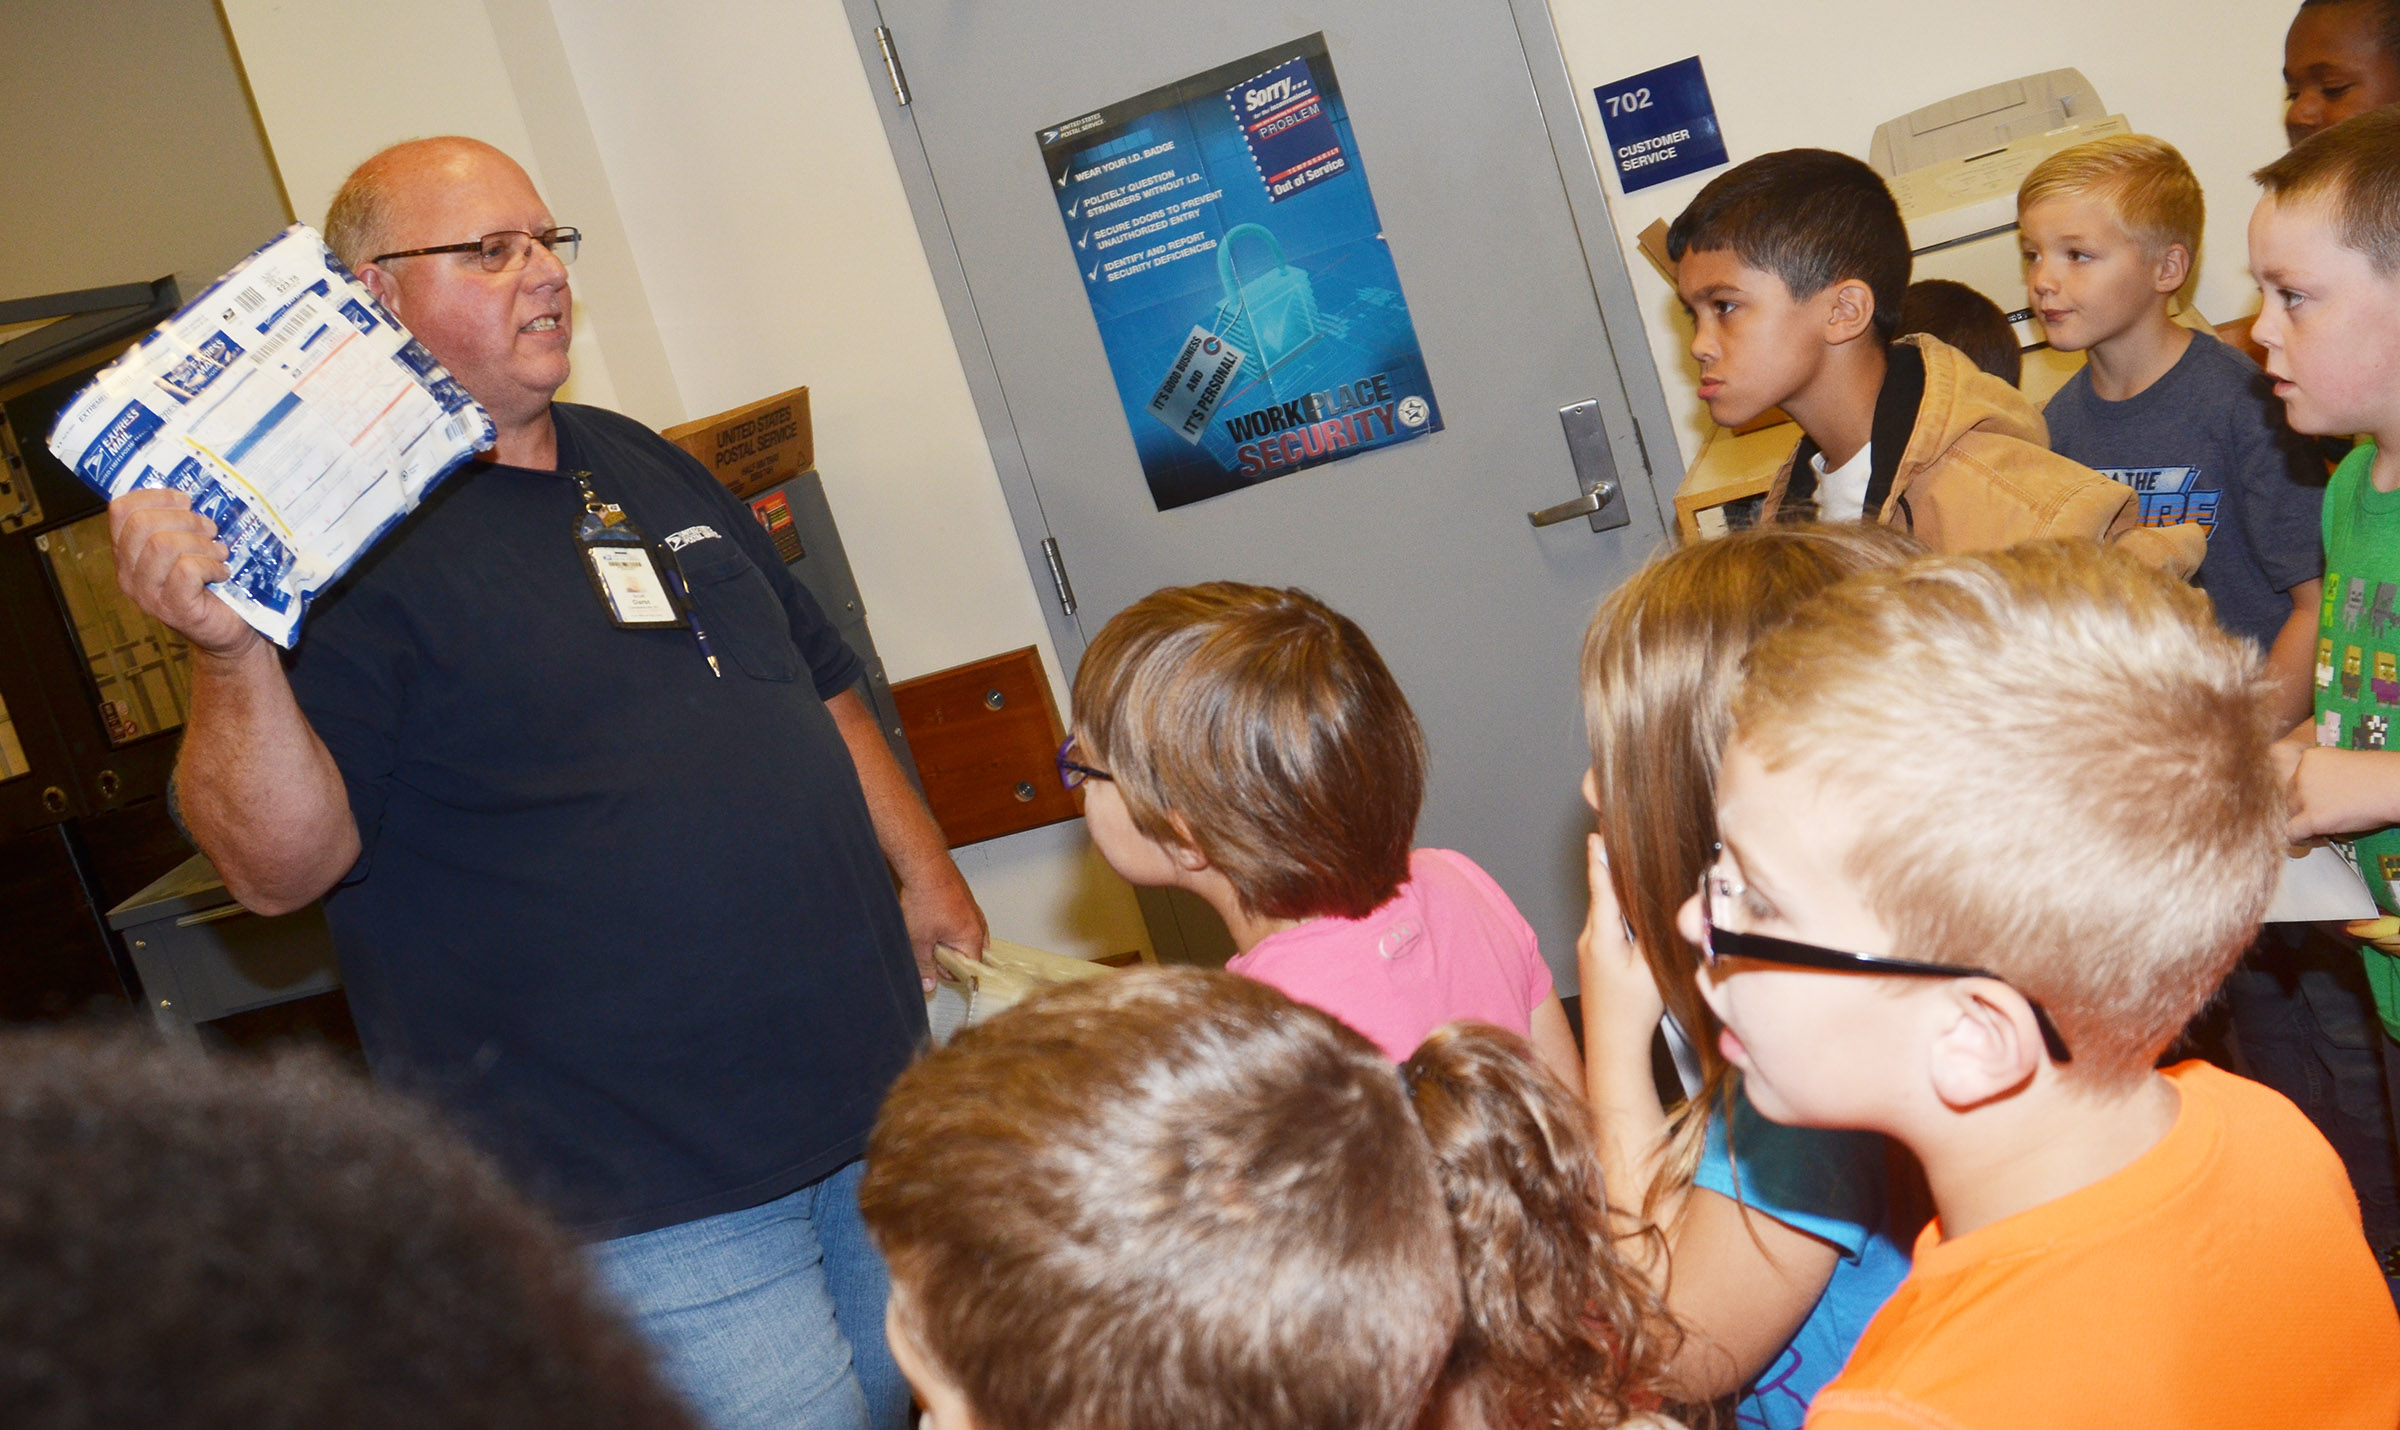 Campbellsville Post Office employee Scott Darst talks to CES students about how packages are sorted.